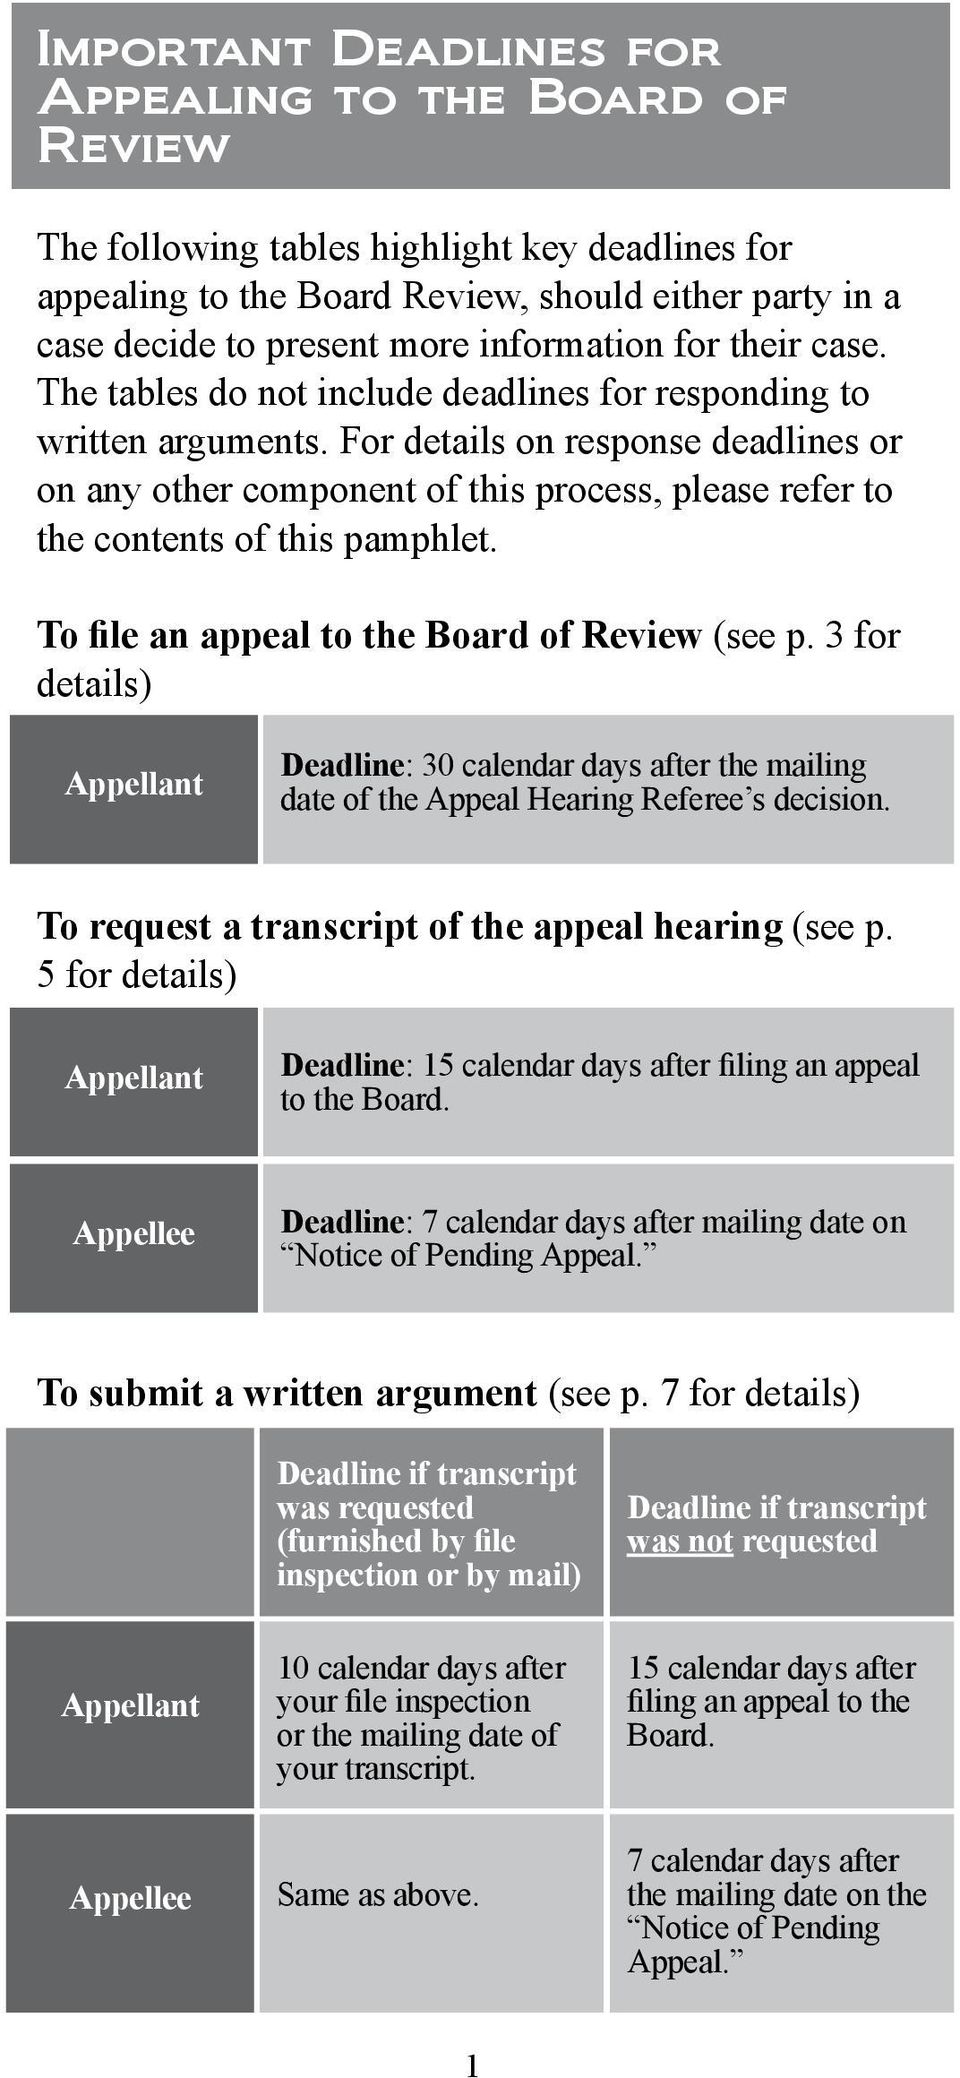 For details on response deadlines or on any other component of this process, please refer to the contents of this pamphlet. To file an appeal to the Board of Review (see p.